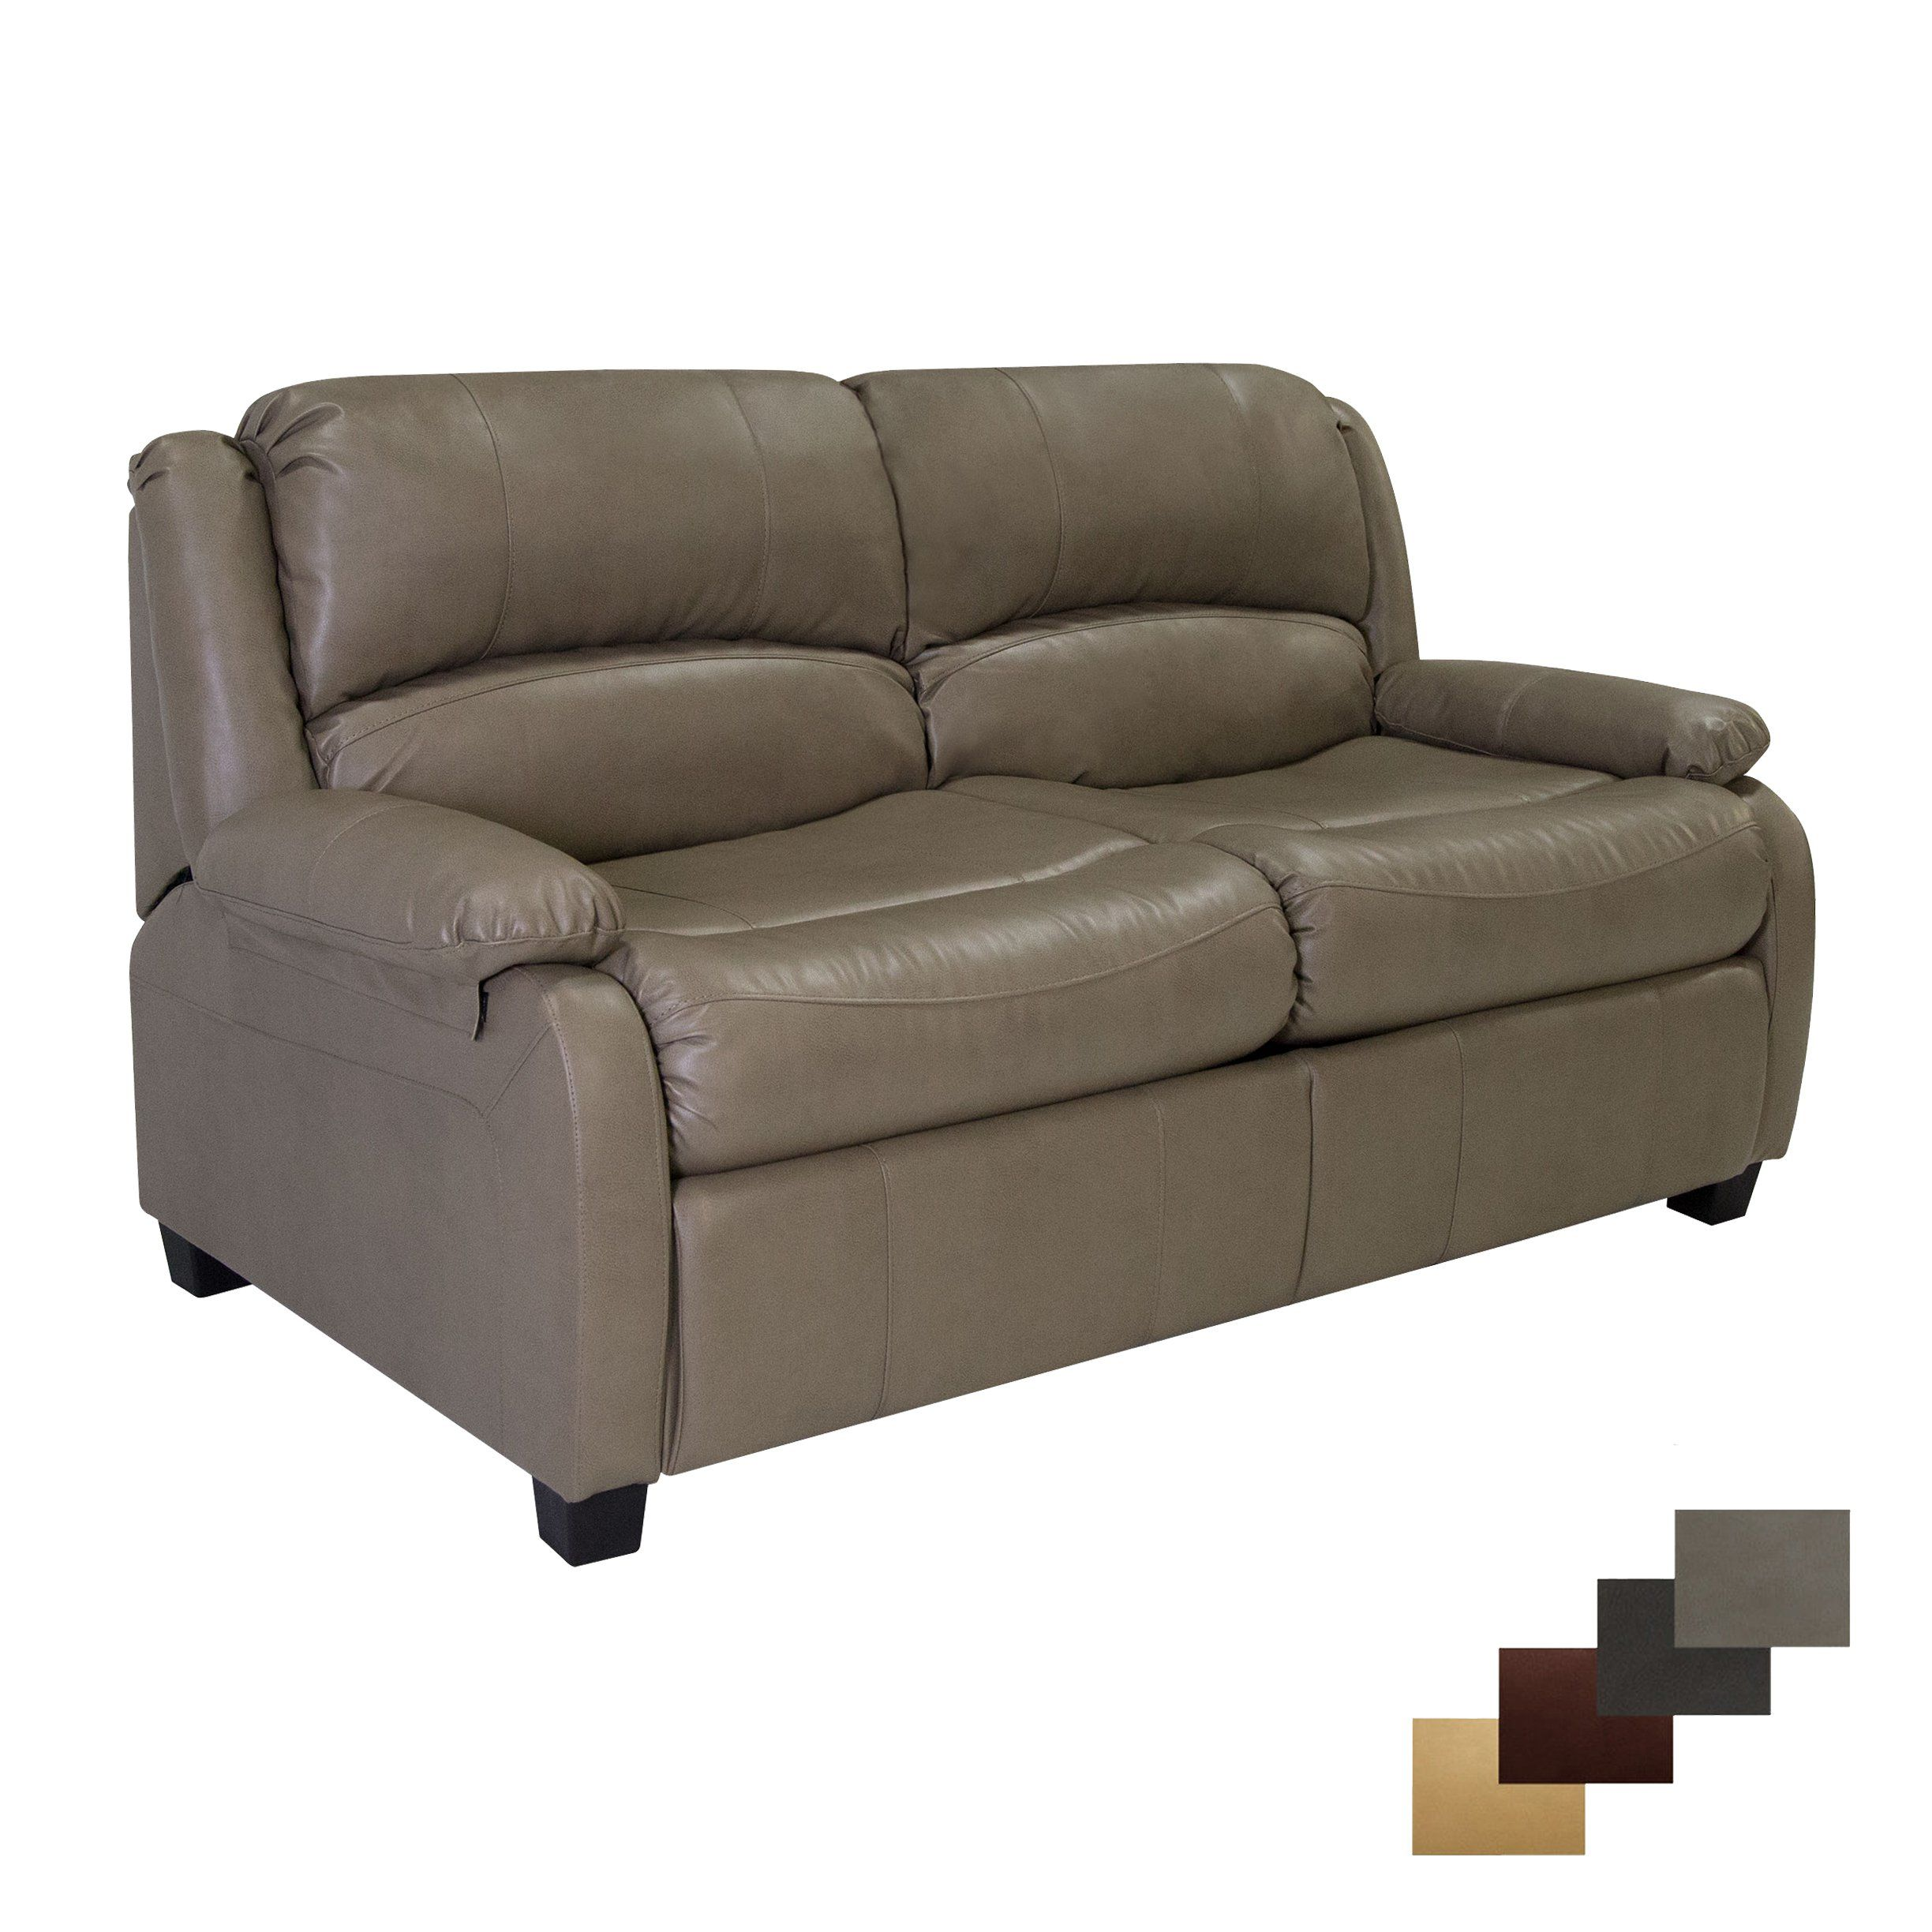 Recpro Charles 65 Rv Sofa Sleeper W Hide A Bed Loveseat Putty Rv